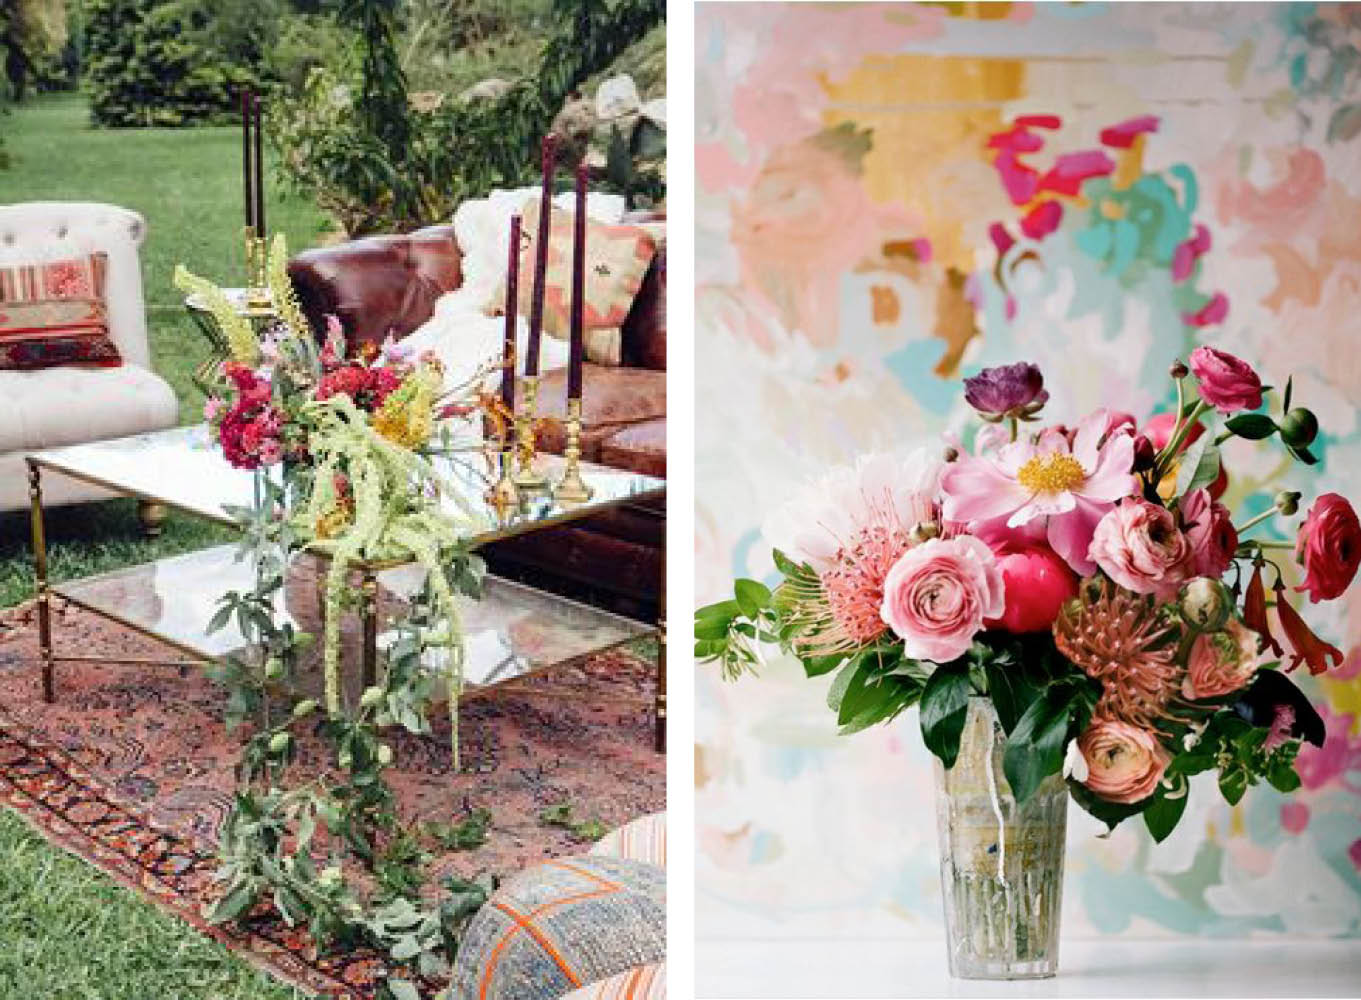 Left: Photographer/Videographer: Celia & Jorge of Pabelona Studio / Venue: Fairchild Gardens / Planning & Design: Miranda Hattie Events / Florist: Anthology Right:  Michelle Armas  Painter found via  OnceWed